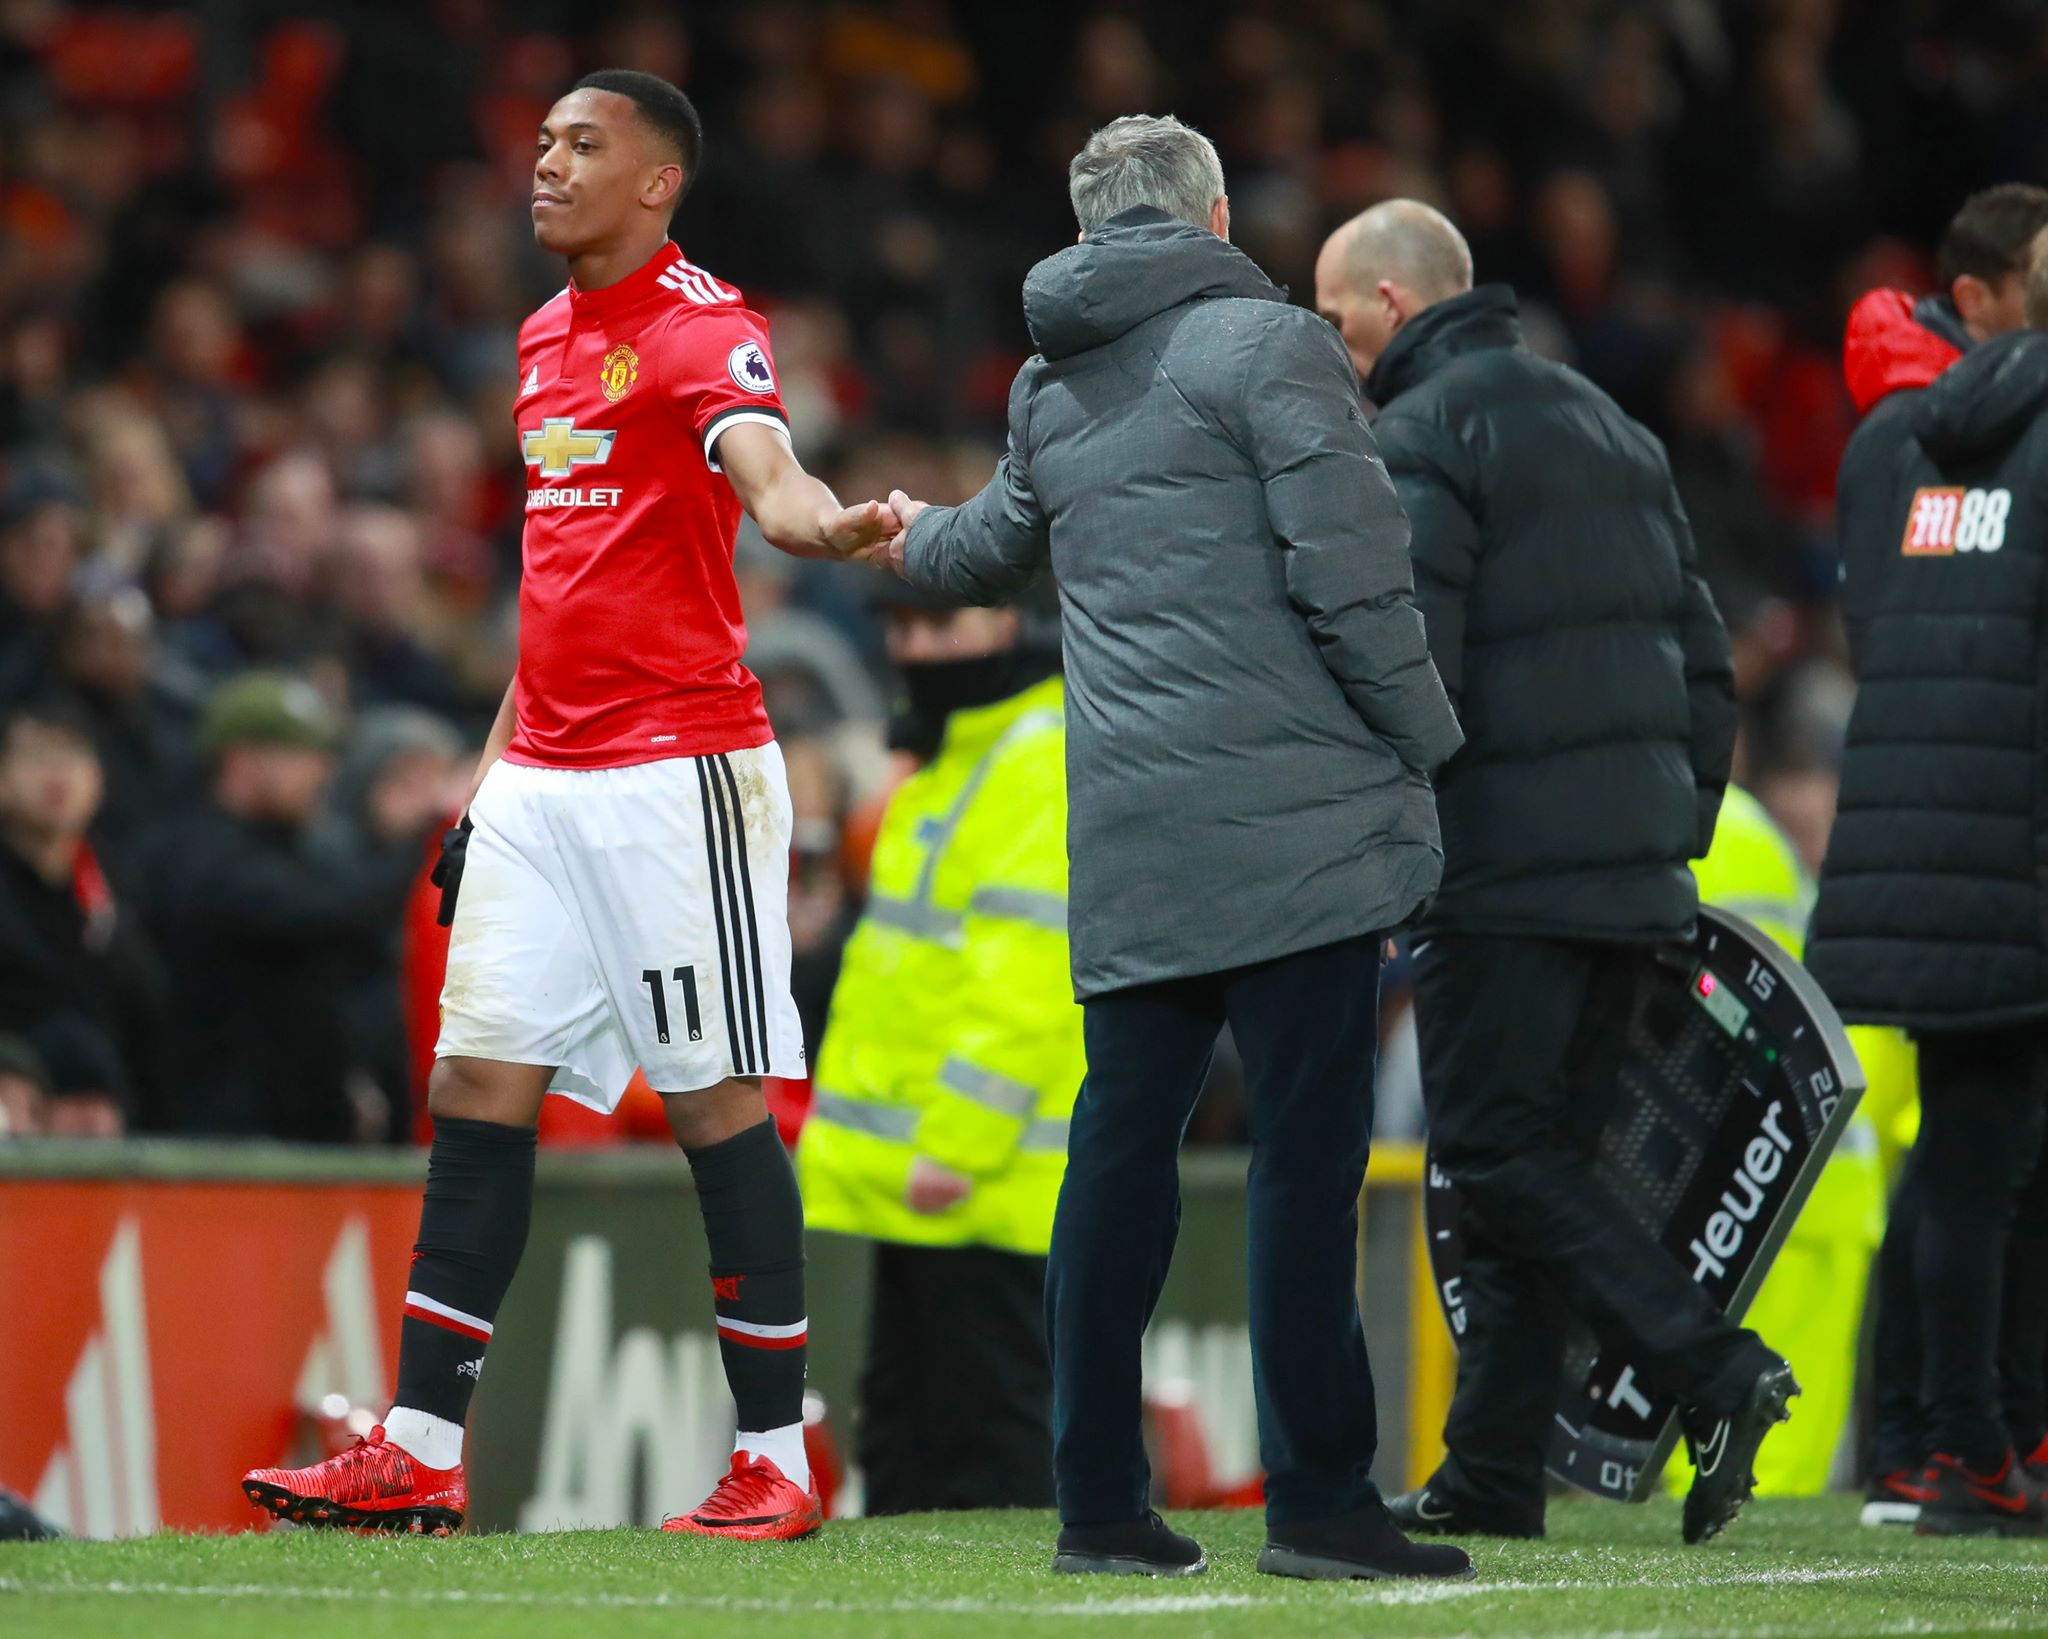 Mourinho shakes hands with Martial. Image: PA